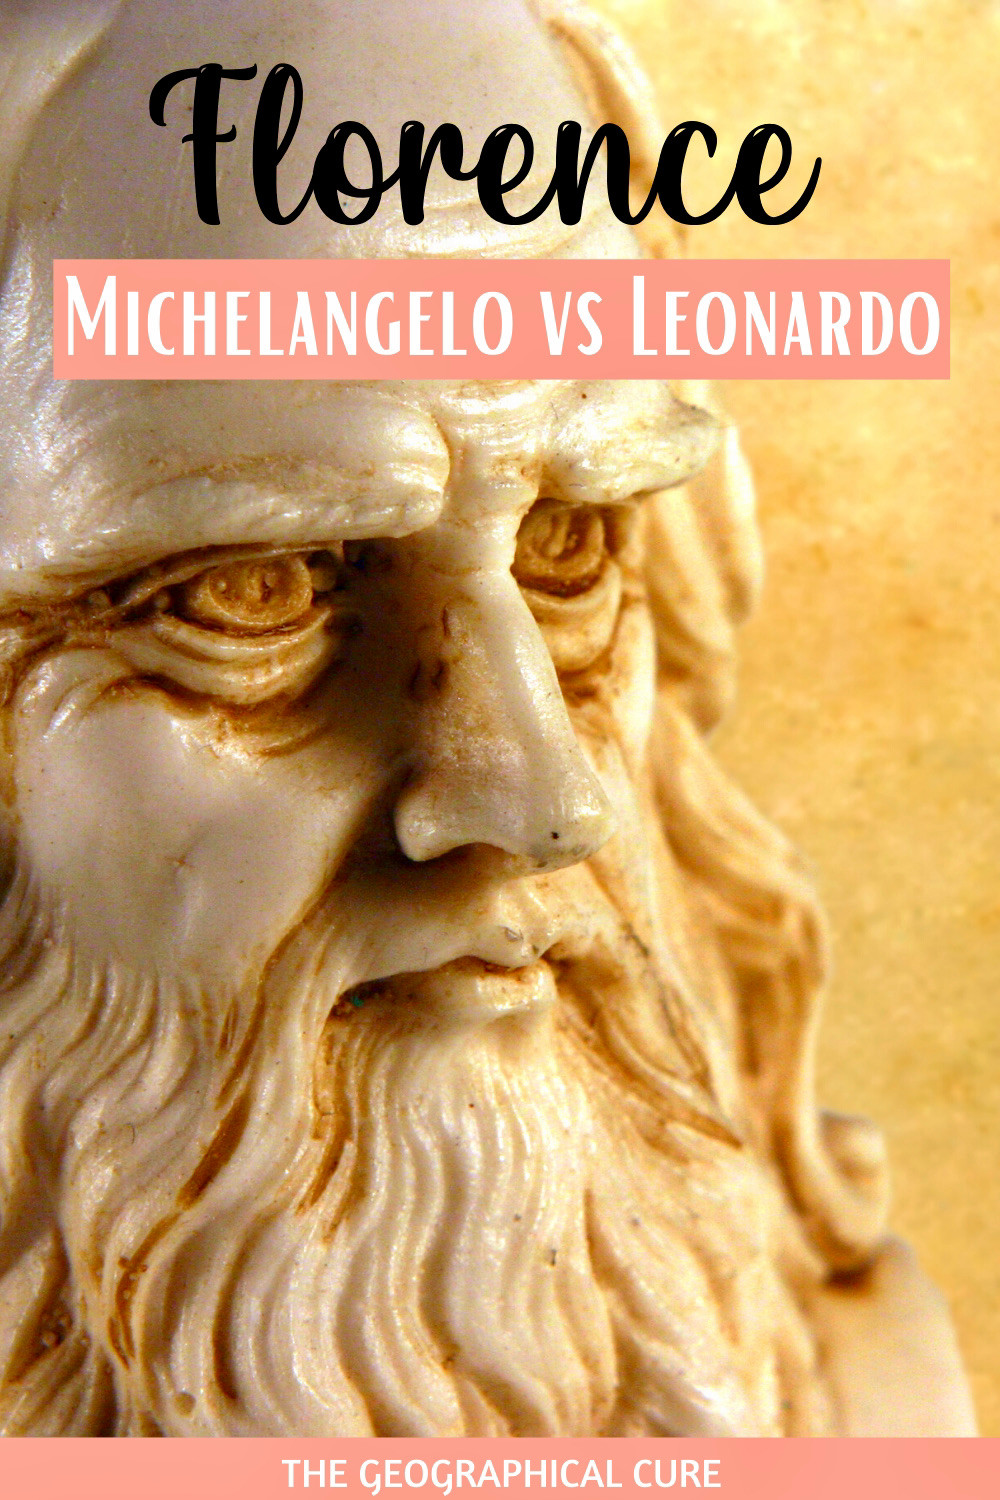 guide to the rivalry between Leonardo and Michelangelo